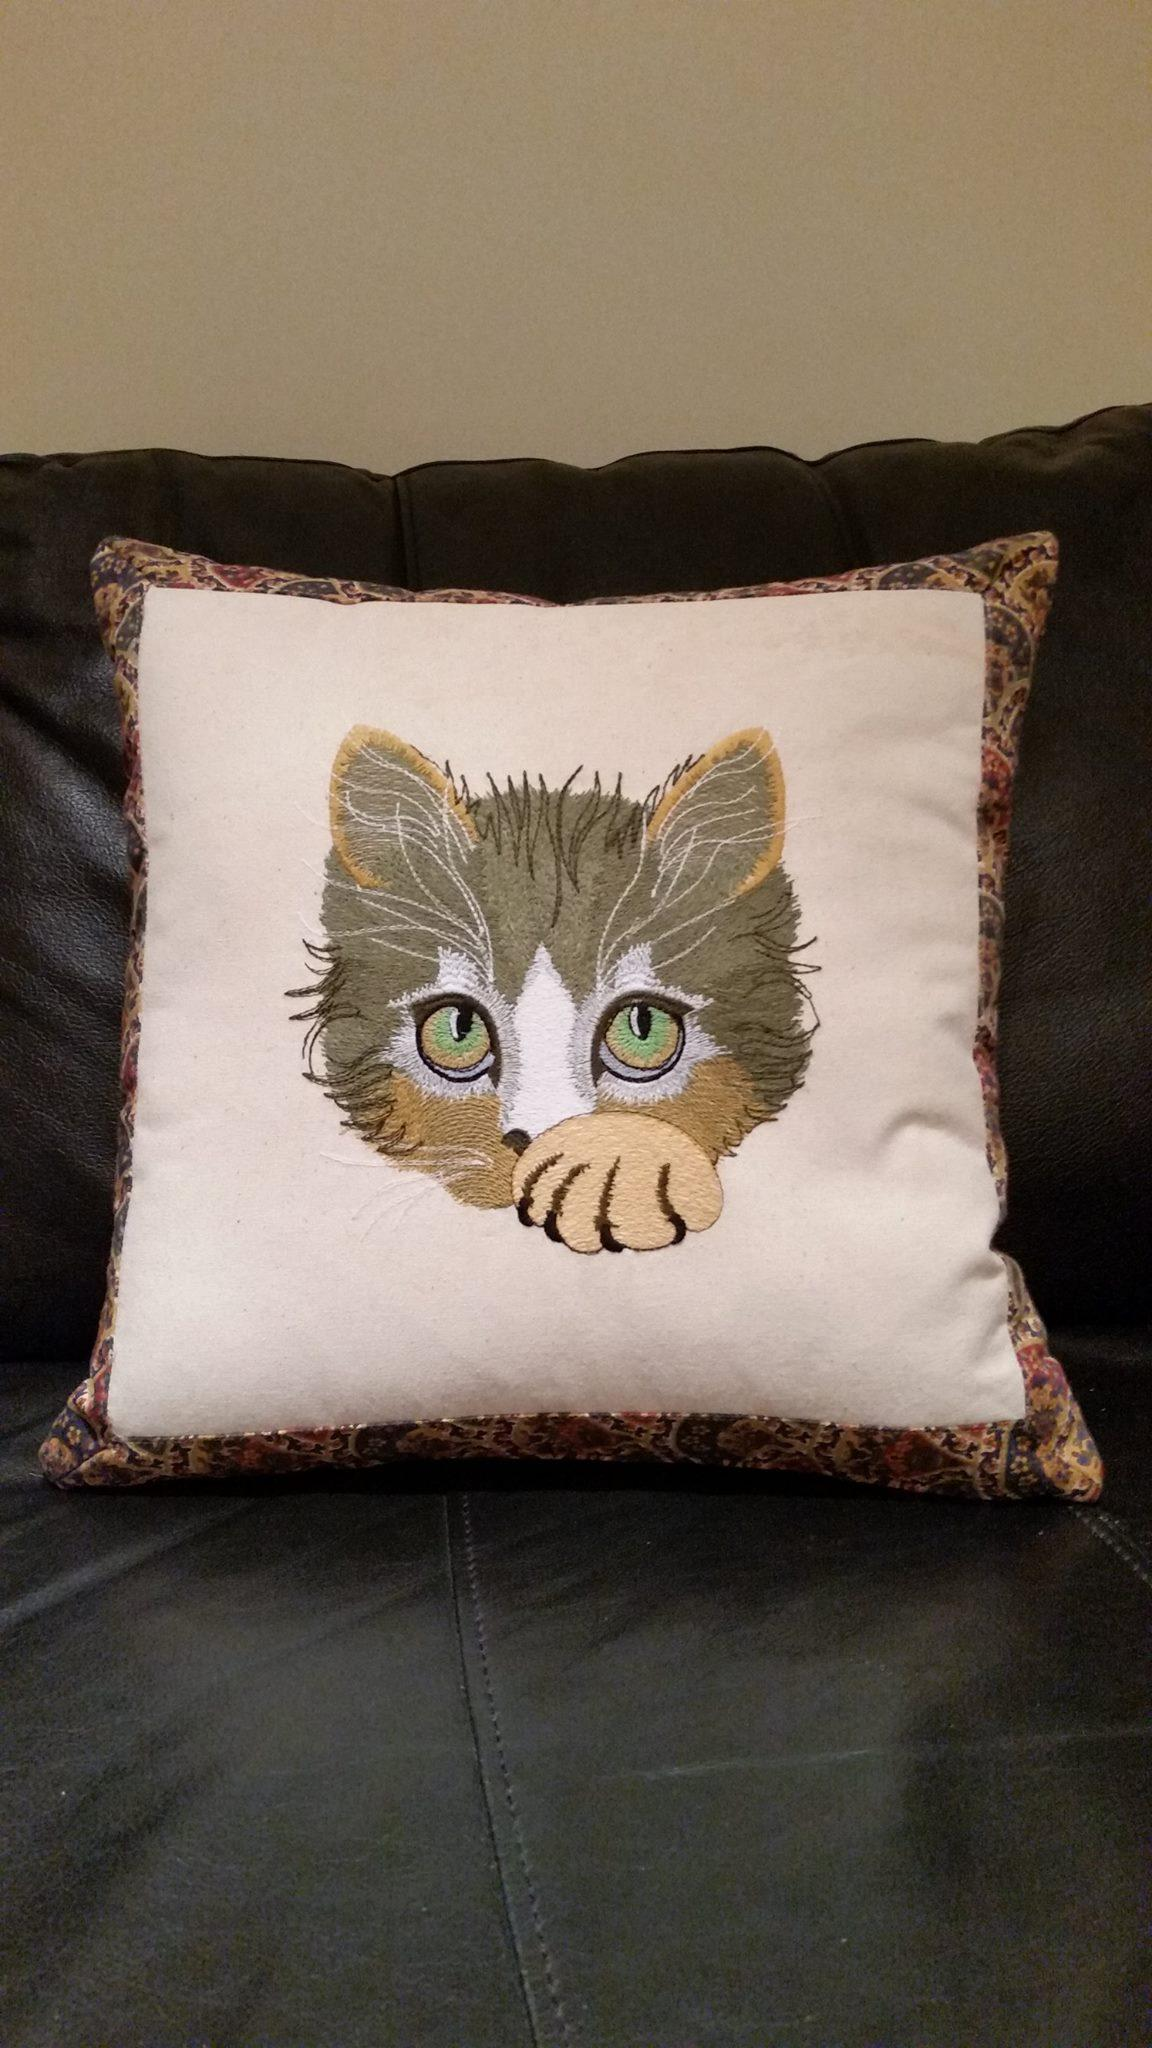 Cushion with cute kitty free embroidery design